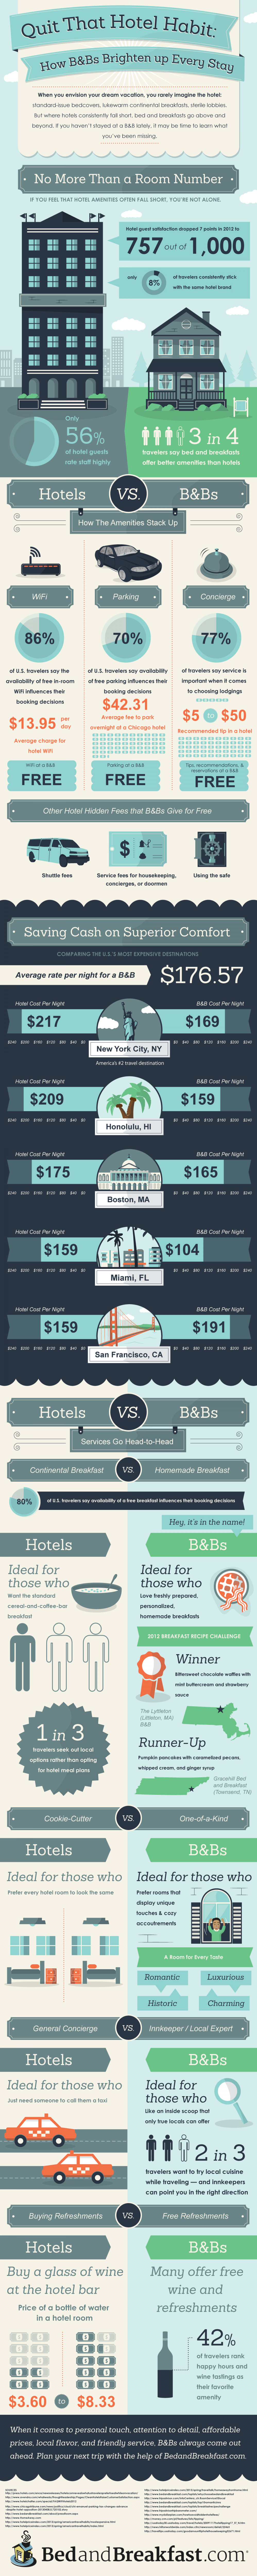 Hotels vs B&Bs Infographic